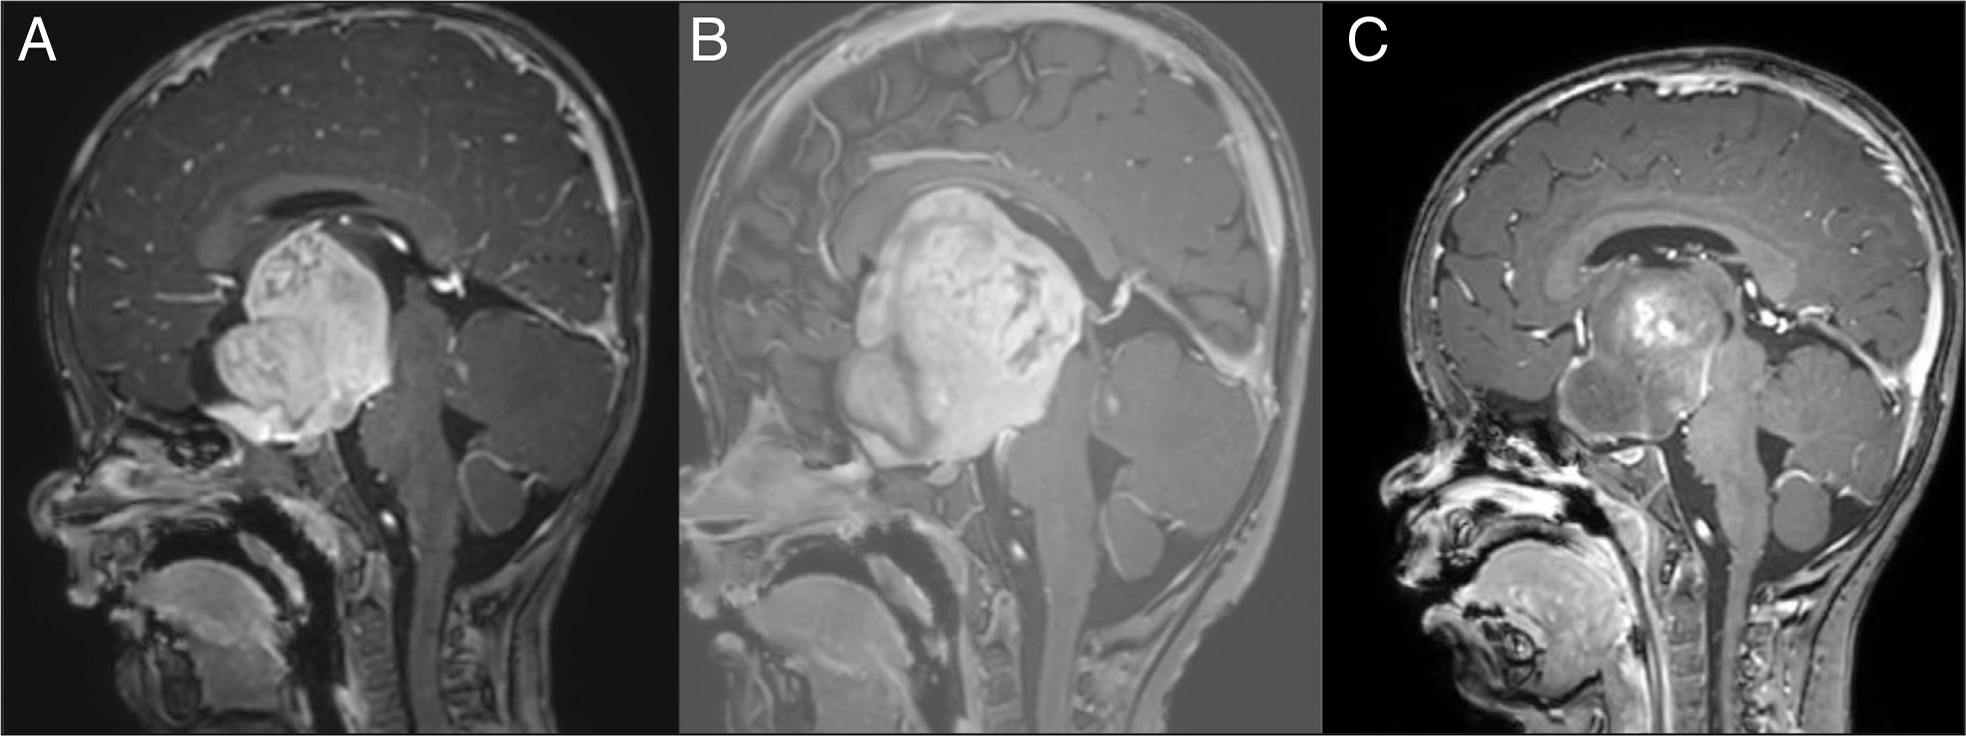 Case 1: Magnetic resonance imaging of the brain. (A) Age 13 months. Sagittal post-contrast T1-weighted image at time of diagnosis and initiation of chemotherapy. It shows a large enhancing mass that is centered in the hypothalamus, involves the optic chiasm, compresses the third ventricle, and pushes the midbrain backward. Signal characteristics are so characteristic of pilocytic astrocytomas that a biopsy was considered unnecessary in the setting of neurofibromatosis type 1. (B) Age 18 months. Sagittal post-contrast T1-weighted image shows tumor growth causing increasing ventriculomegaly that required ventriculo-peritoneal shunting and septostomy (not shown). (C) Age 22 months. Sagittal post-contrast T1-weighted image shows tumor shrinkage. The patient had gained weight with gastrojejunal feedings and was more cheerful. The nystagmus disappeared.